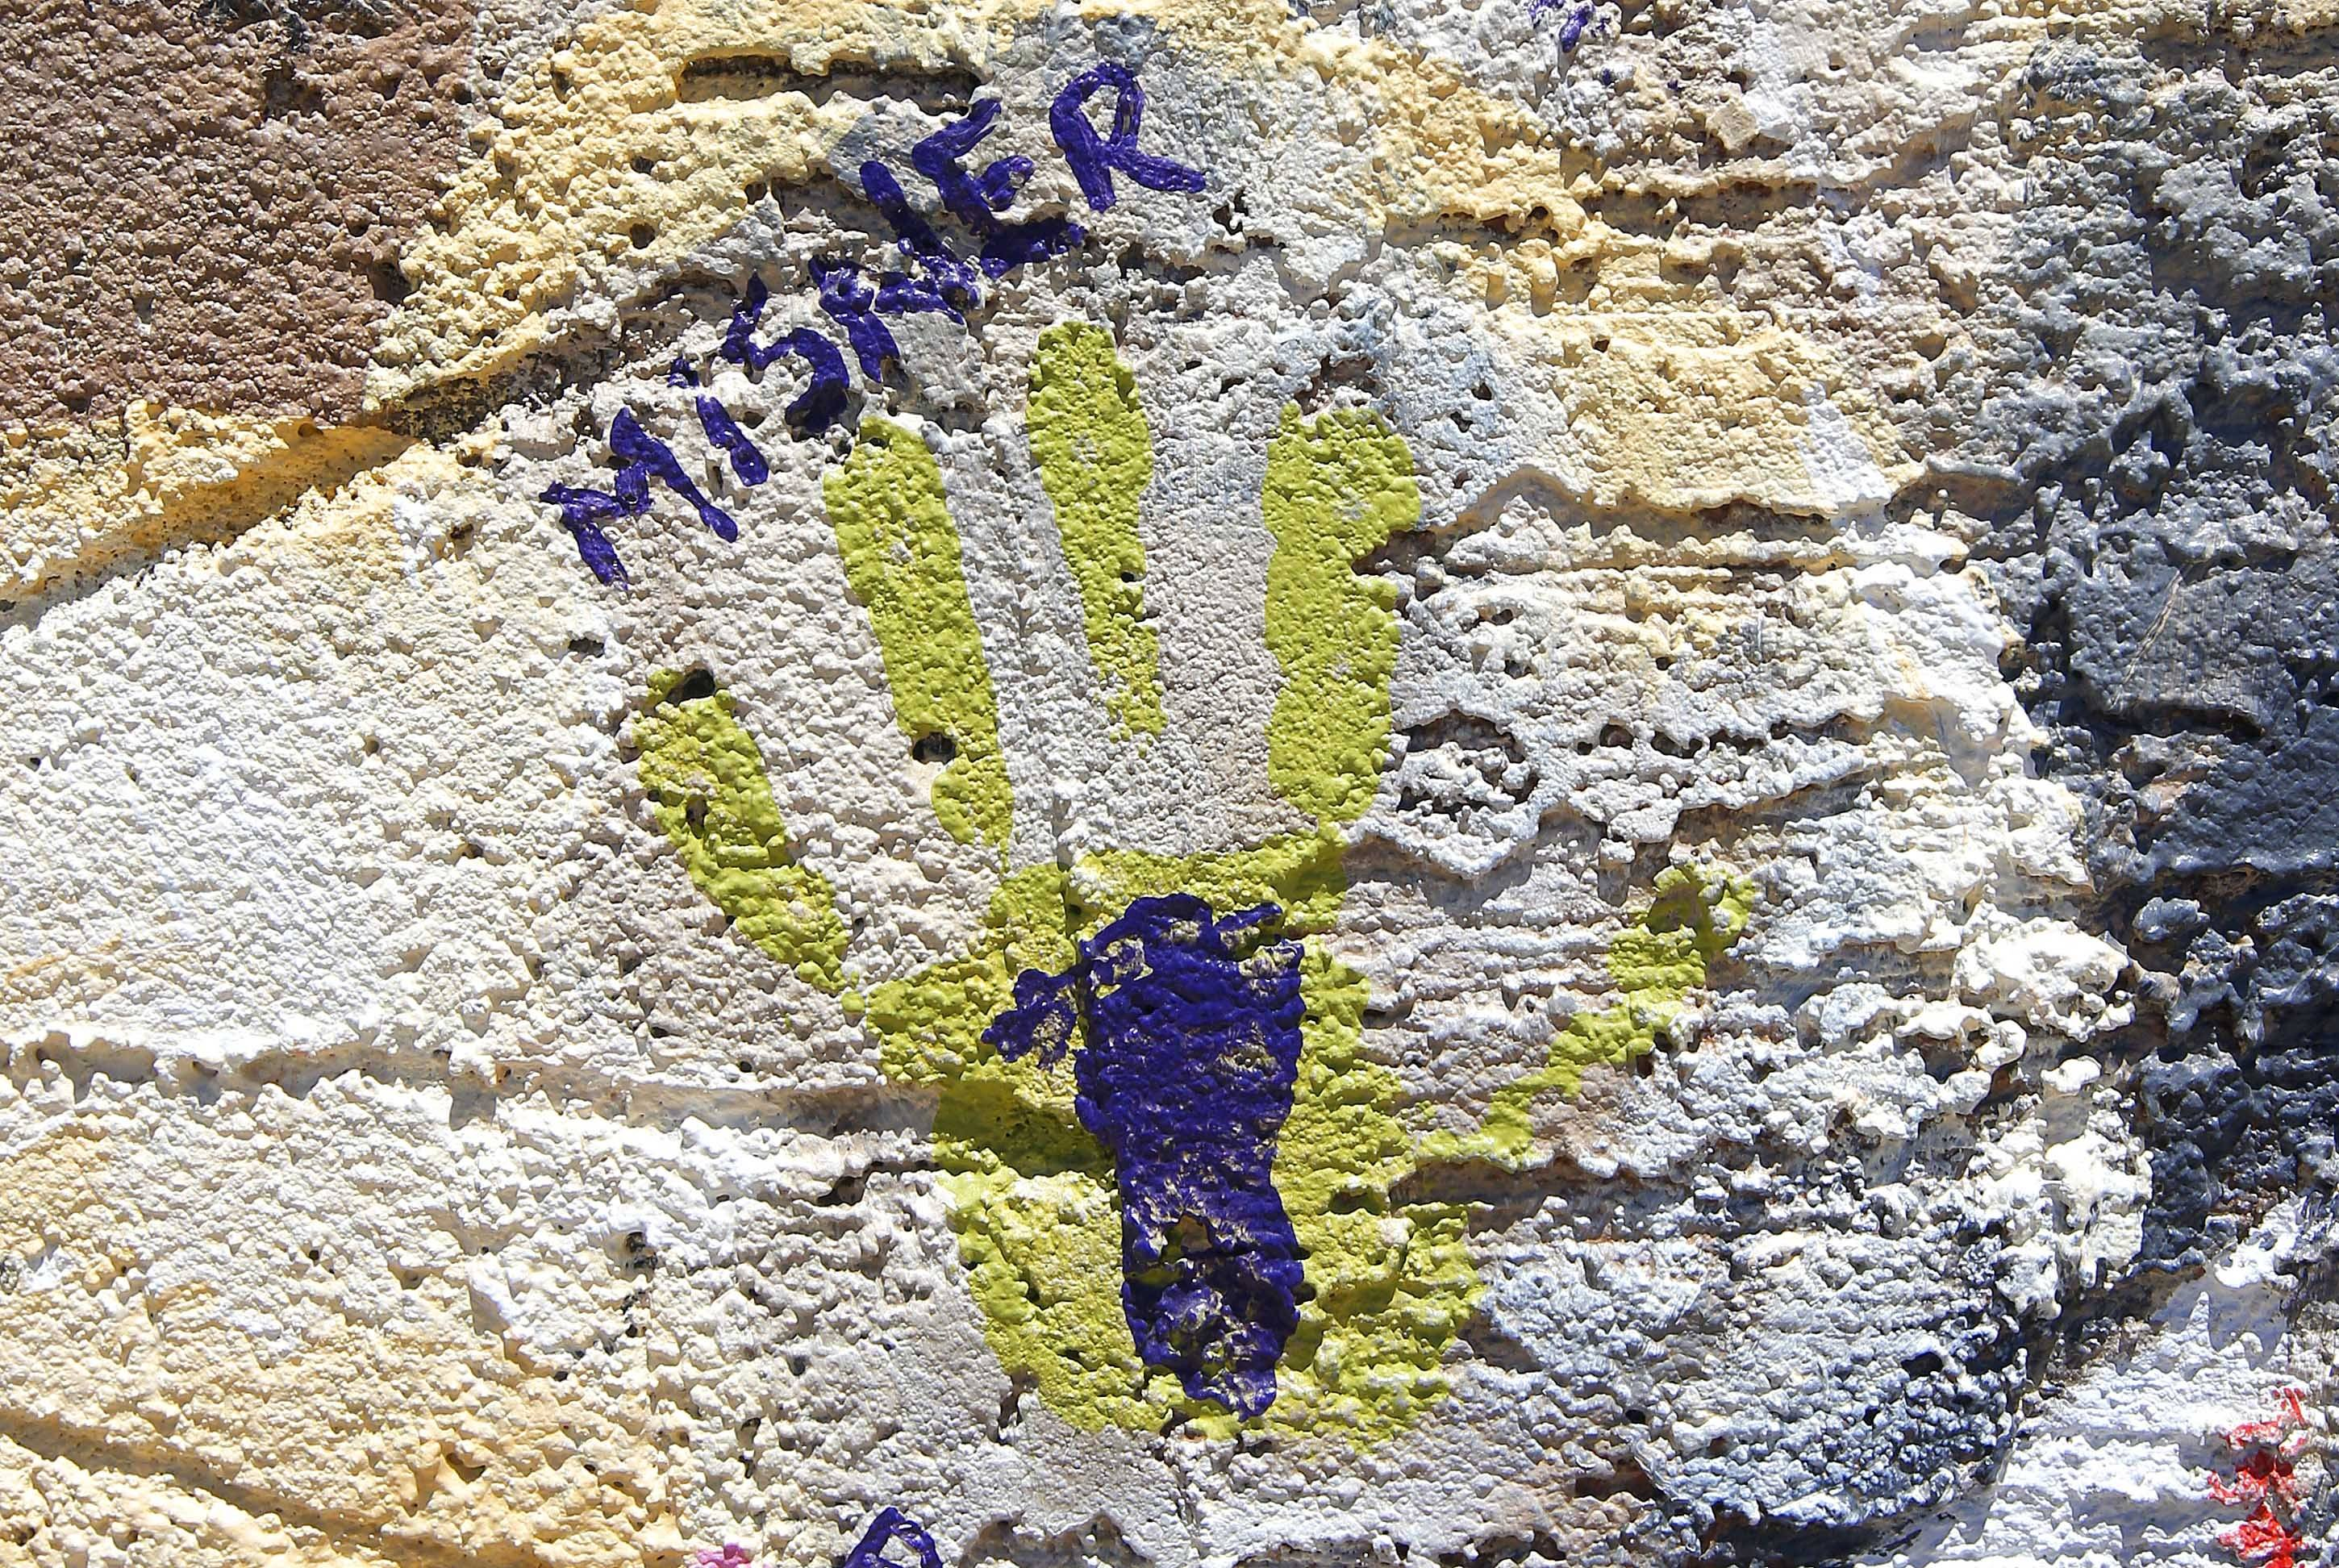 The handprint of Amanda Misner, wife of Sean Misner who perished as one of the 19 Granite Mountain Hotshots fighting an Arizona wildfire, dwarfs the footprint of the son he never knew, as the paint imprints are part of a memorial mural near the Pioneer Cemetery honoring all the hotshots who died on Tuesday, June 24, 2014, in Prescott, Ariz. Amanda Misner was seven months pregnant with the younger Sean Jaxon Herbert Misner, when her husband was killed.